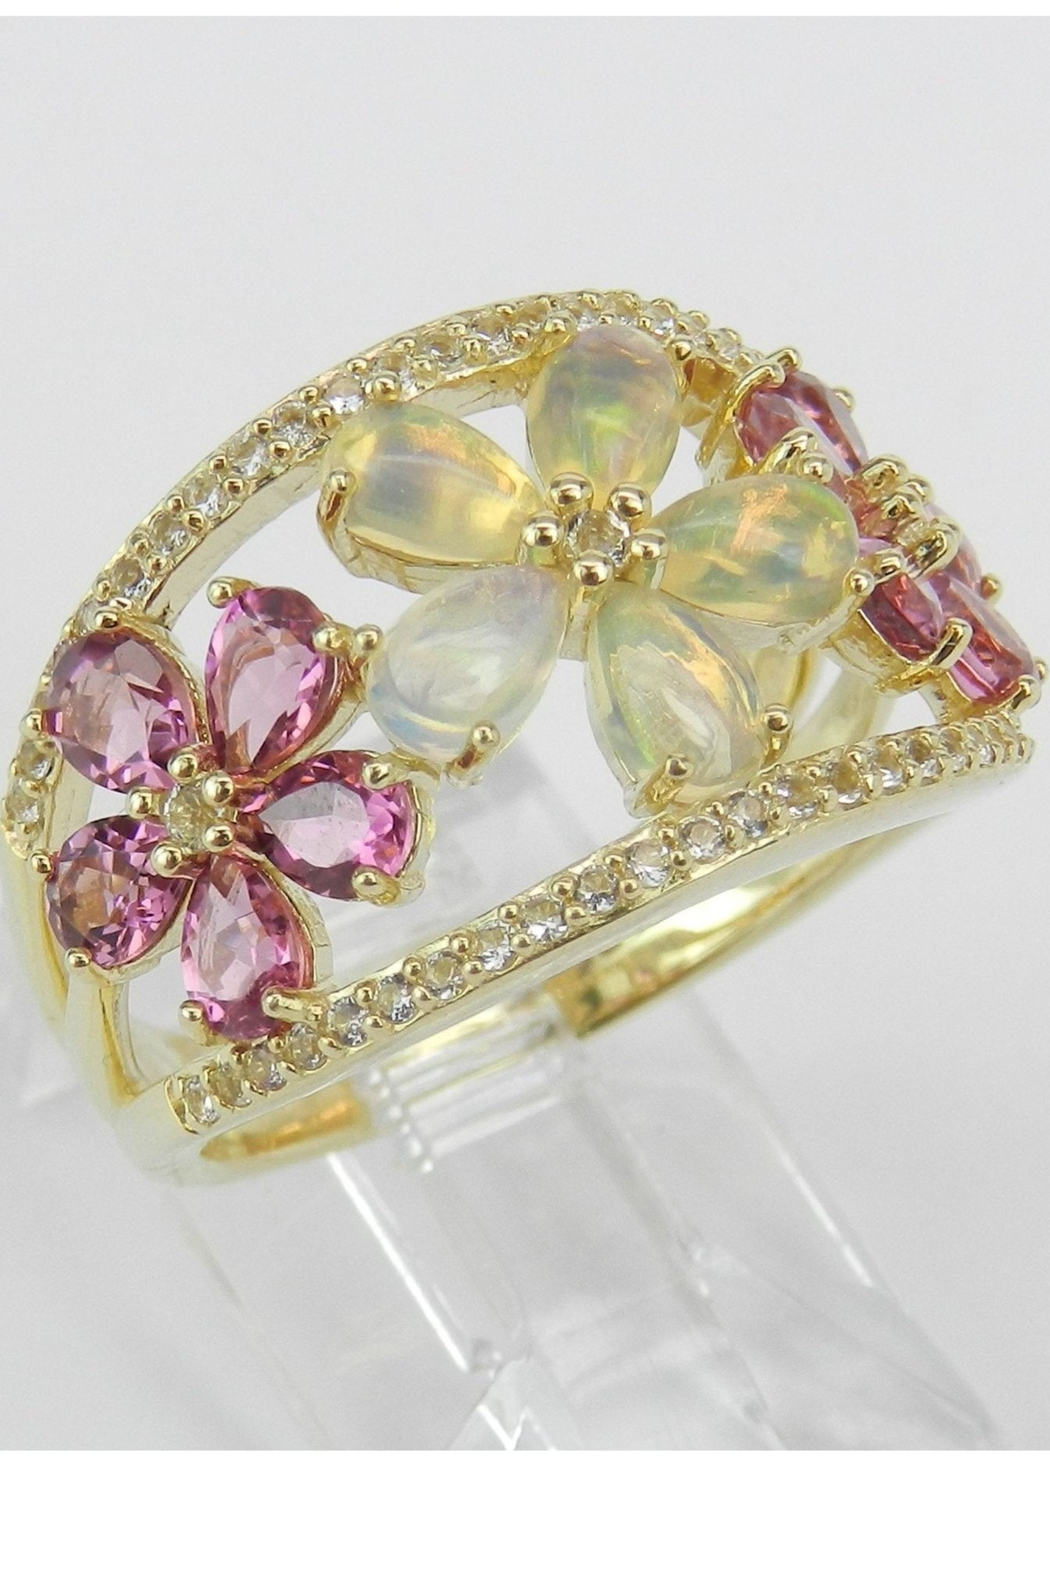 Margolin & Co Yellow Gold Opal Pink Tourmaline White Sapphire Flower Cluster Cocktail Ring Size 7 October Gem - Front Full Image